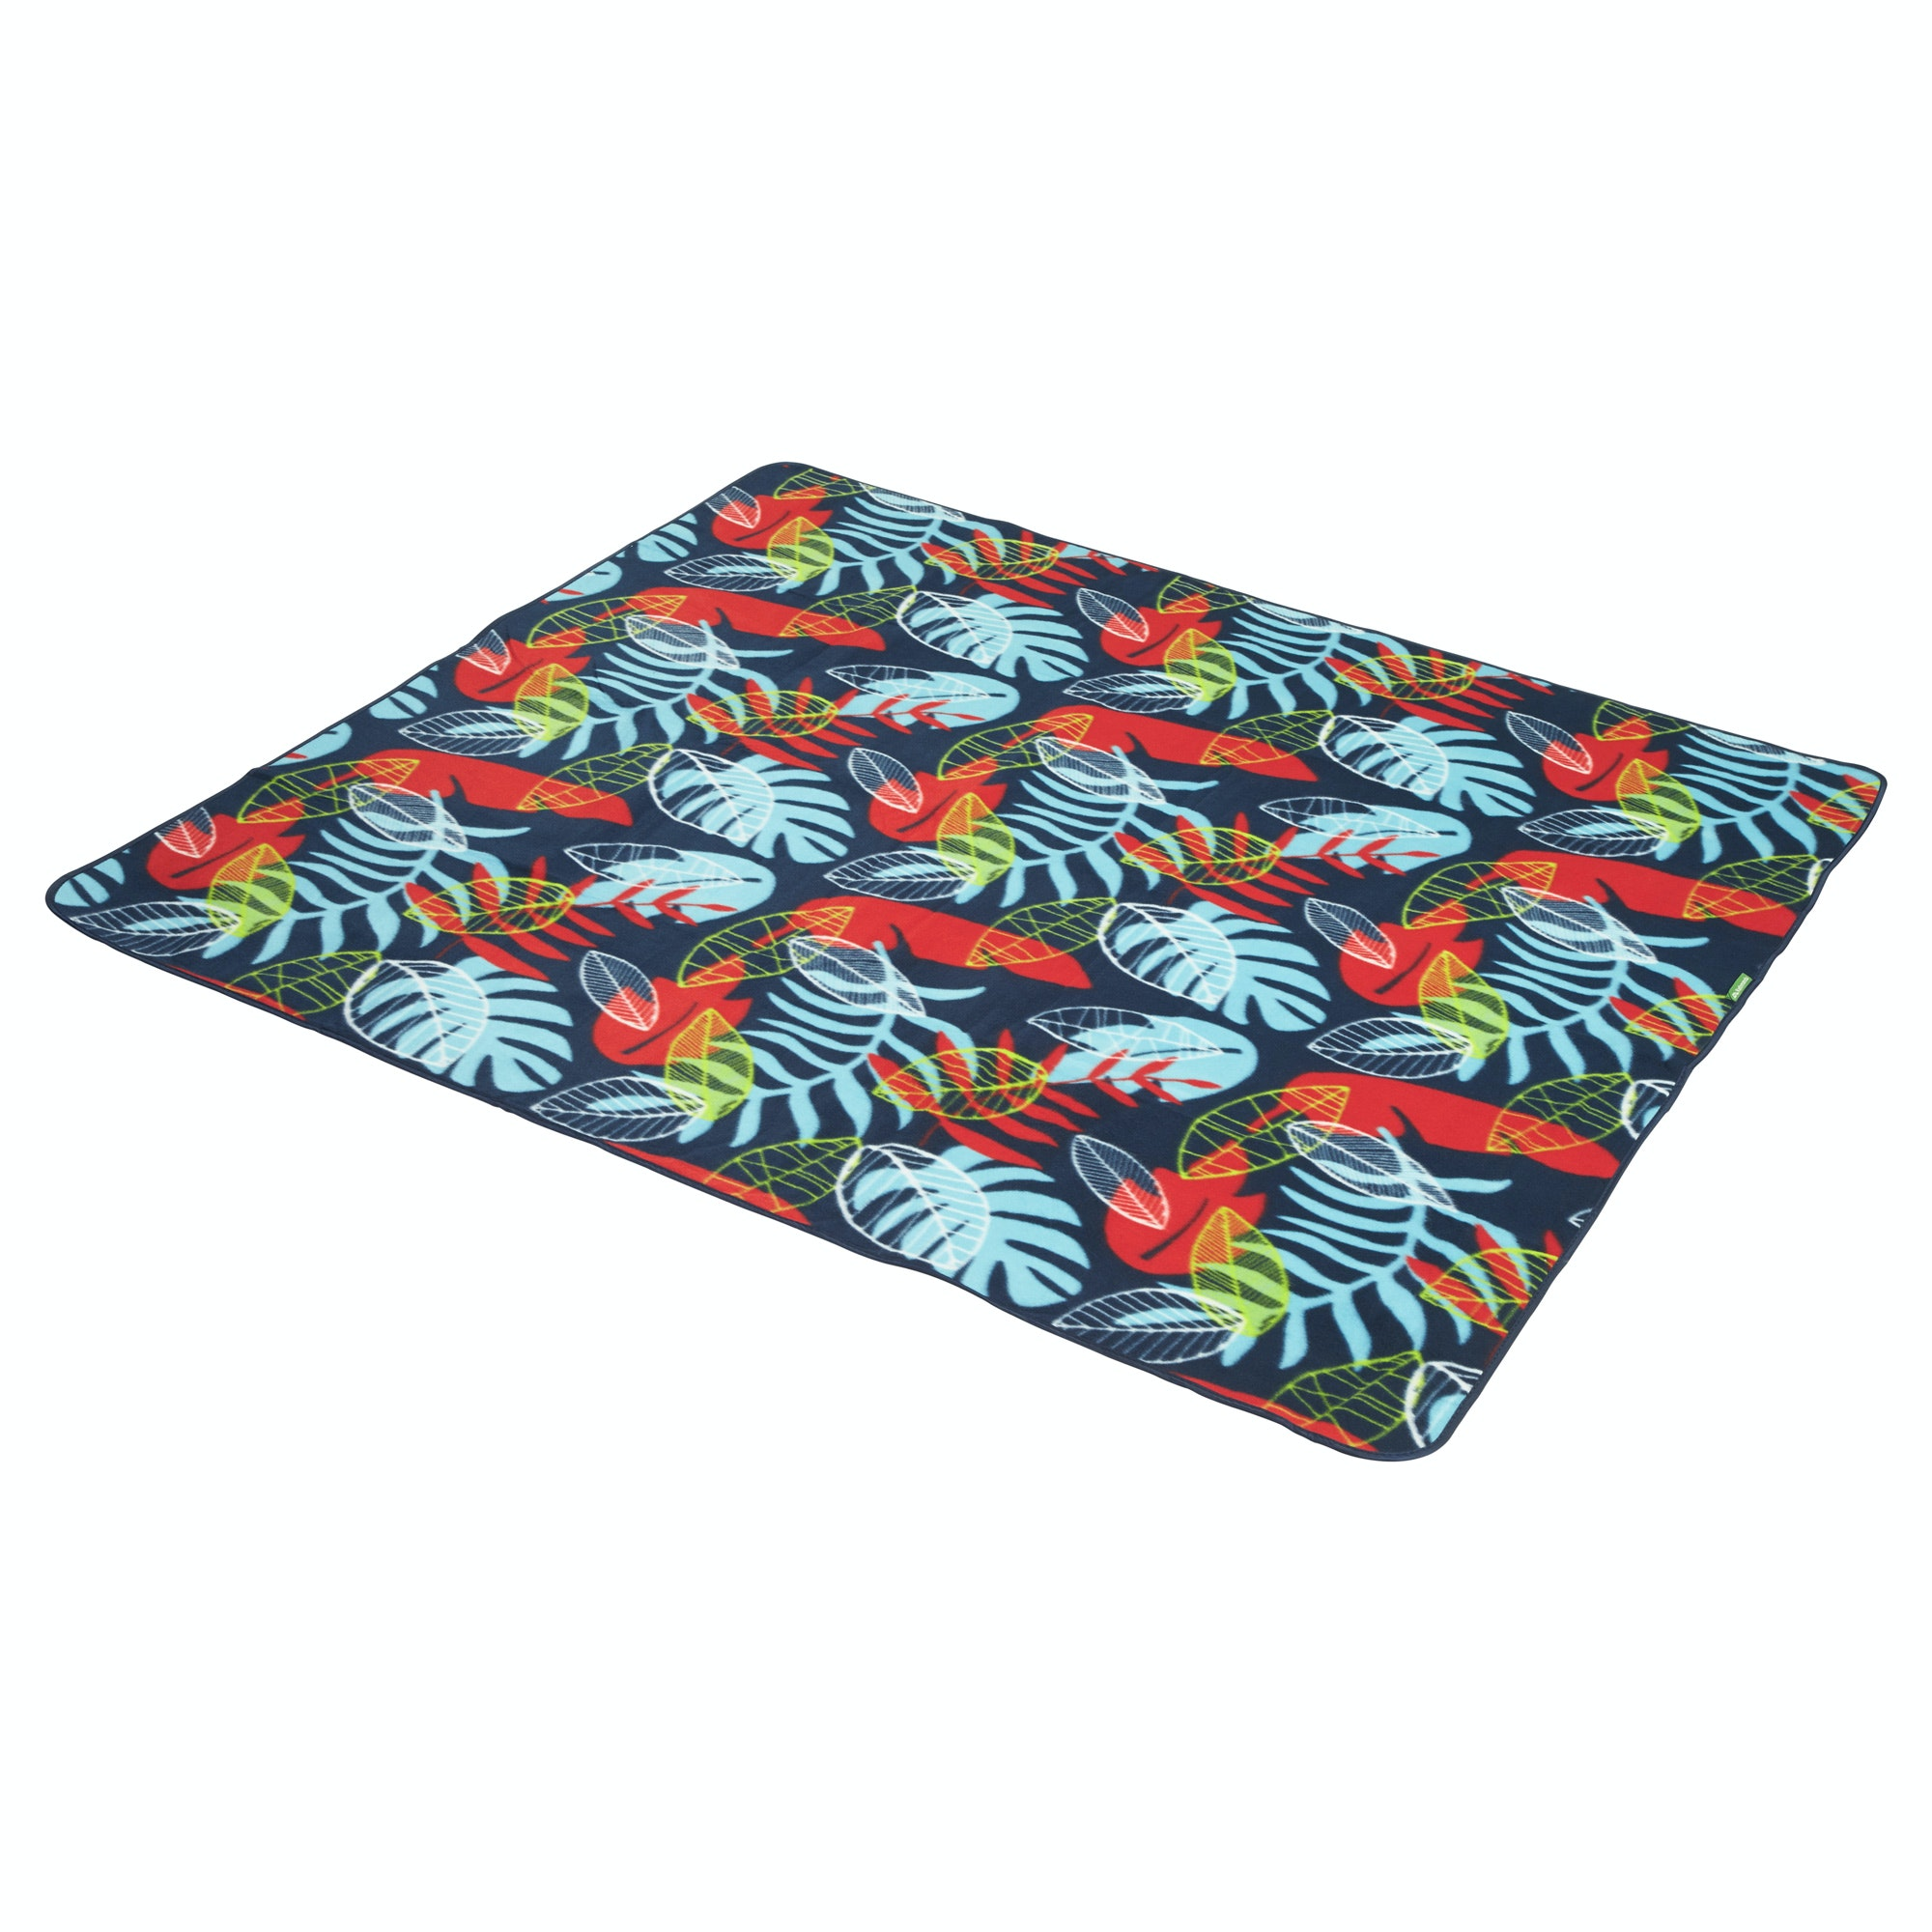 Kathmandu roll up compact fleece top travel rug camping for Best store to buy rugs